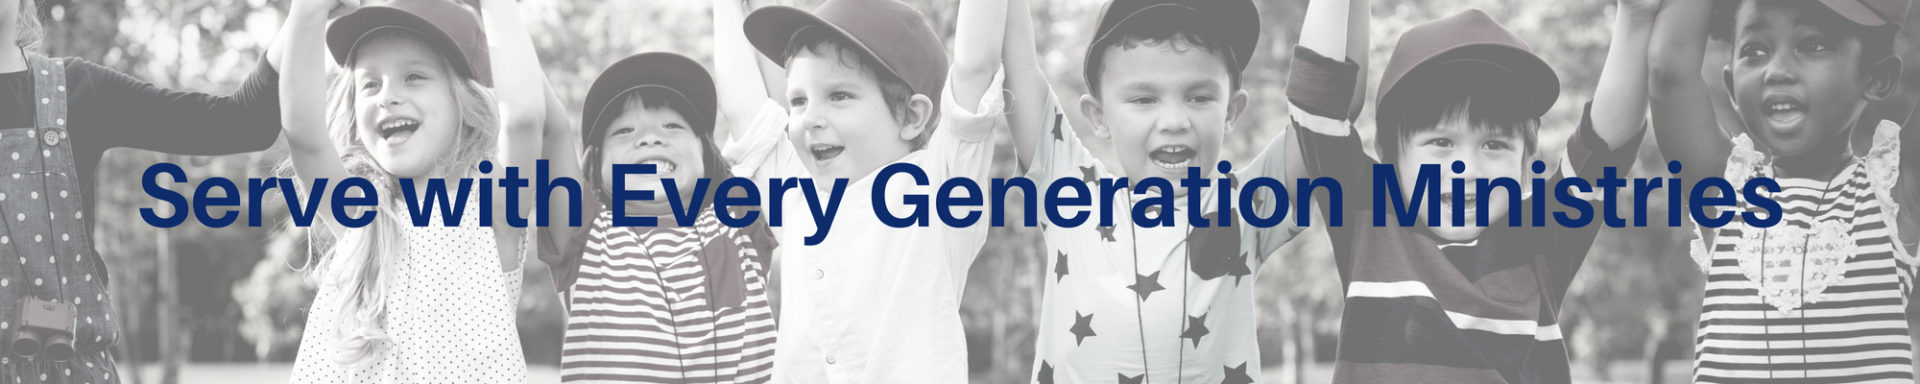 Serve with Every Generation Ministries (1)